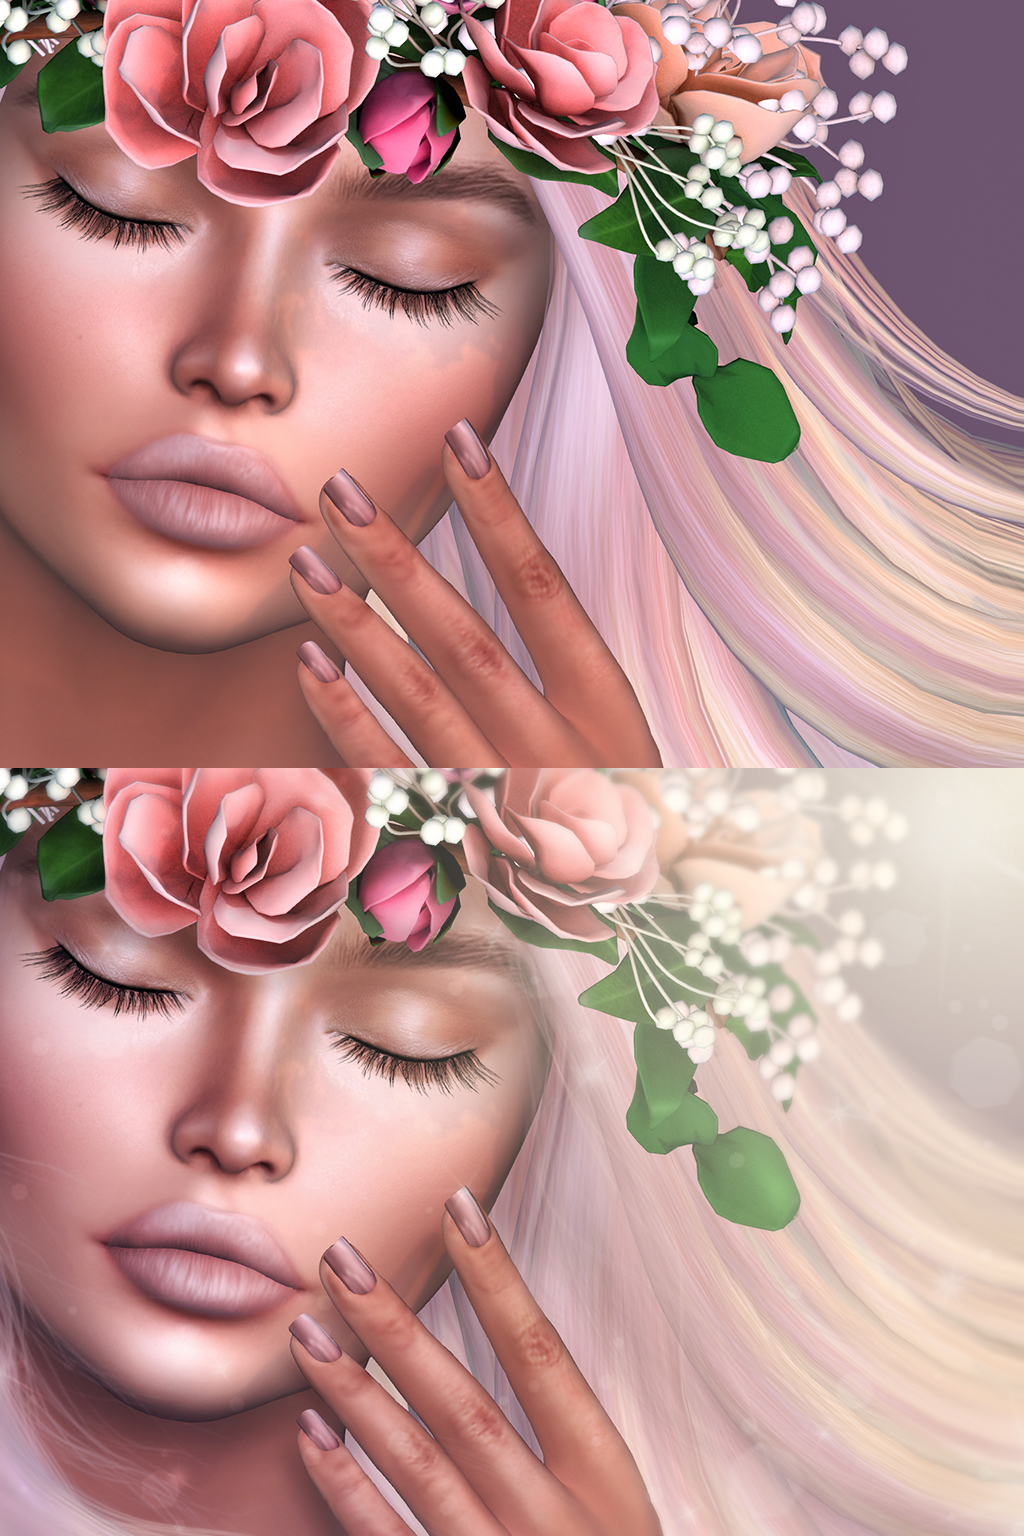 DreamyLips_Ad_4x3_BeforeAfter.jpg